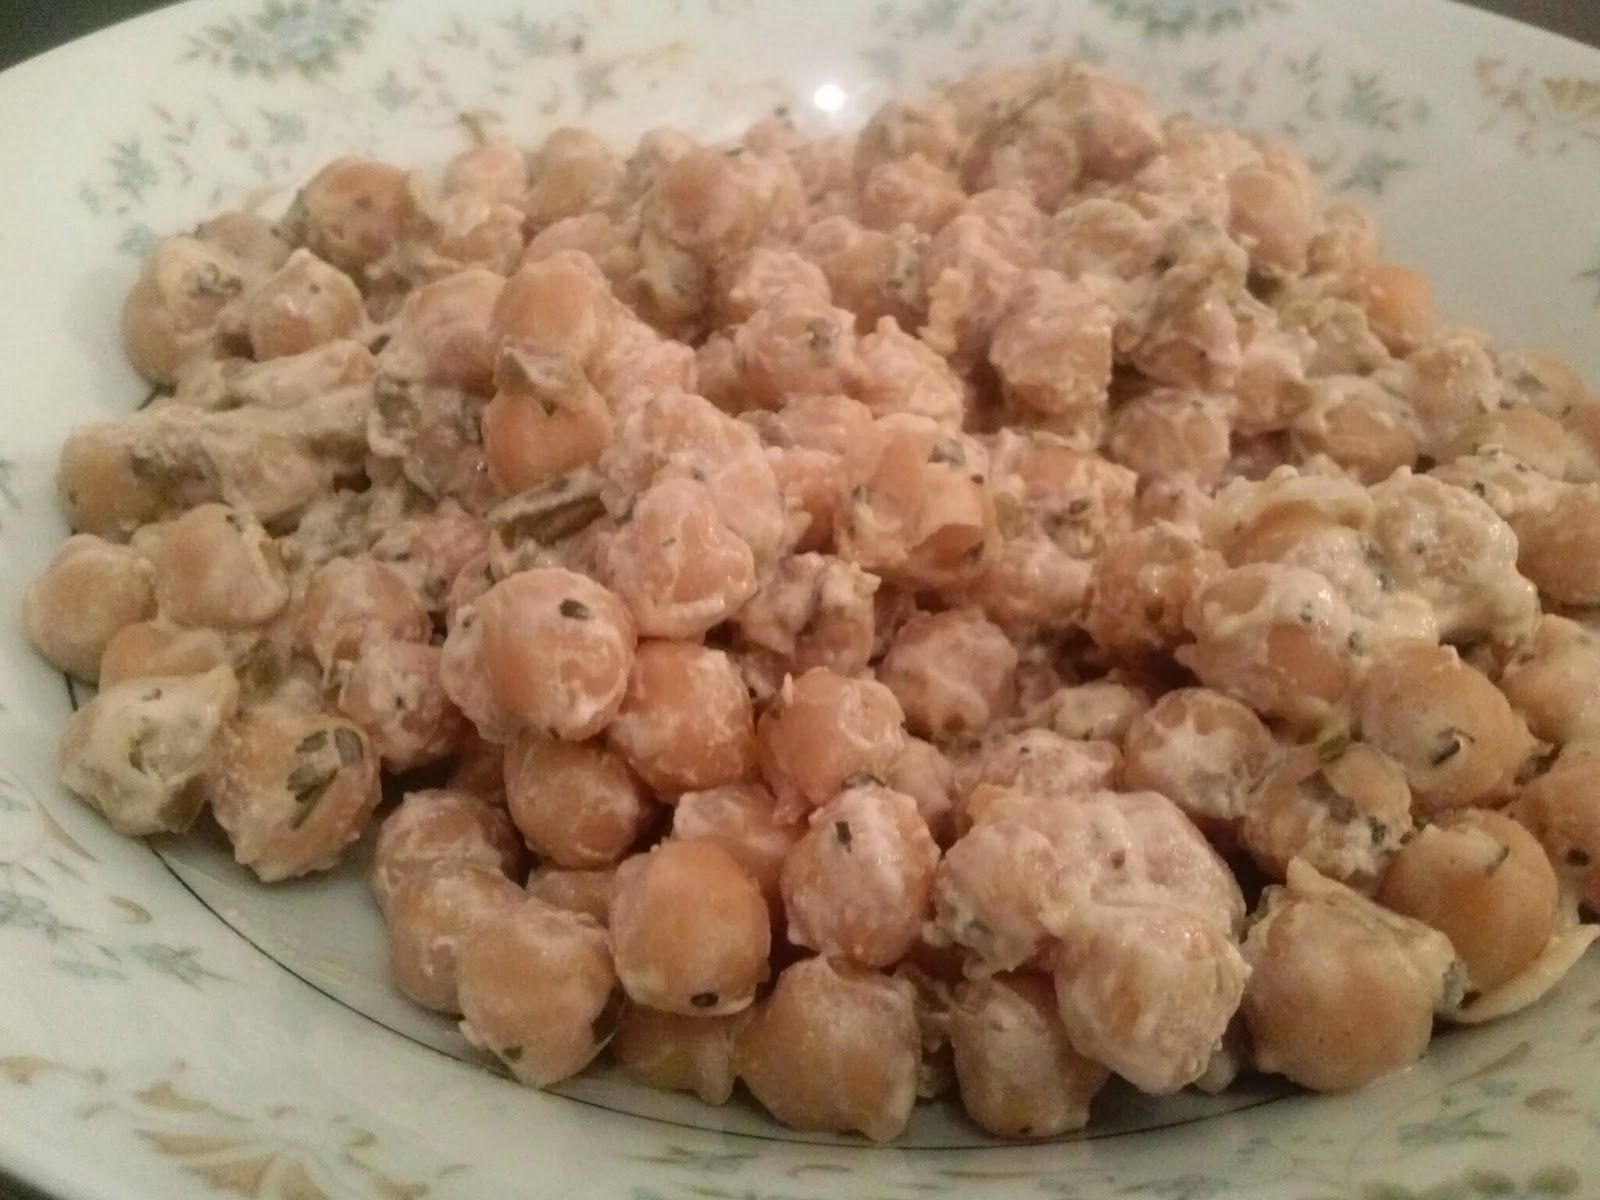 I'm a Cook, not a Chef: You say Chickpea, I say Garbanzo bean.